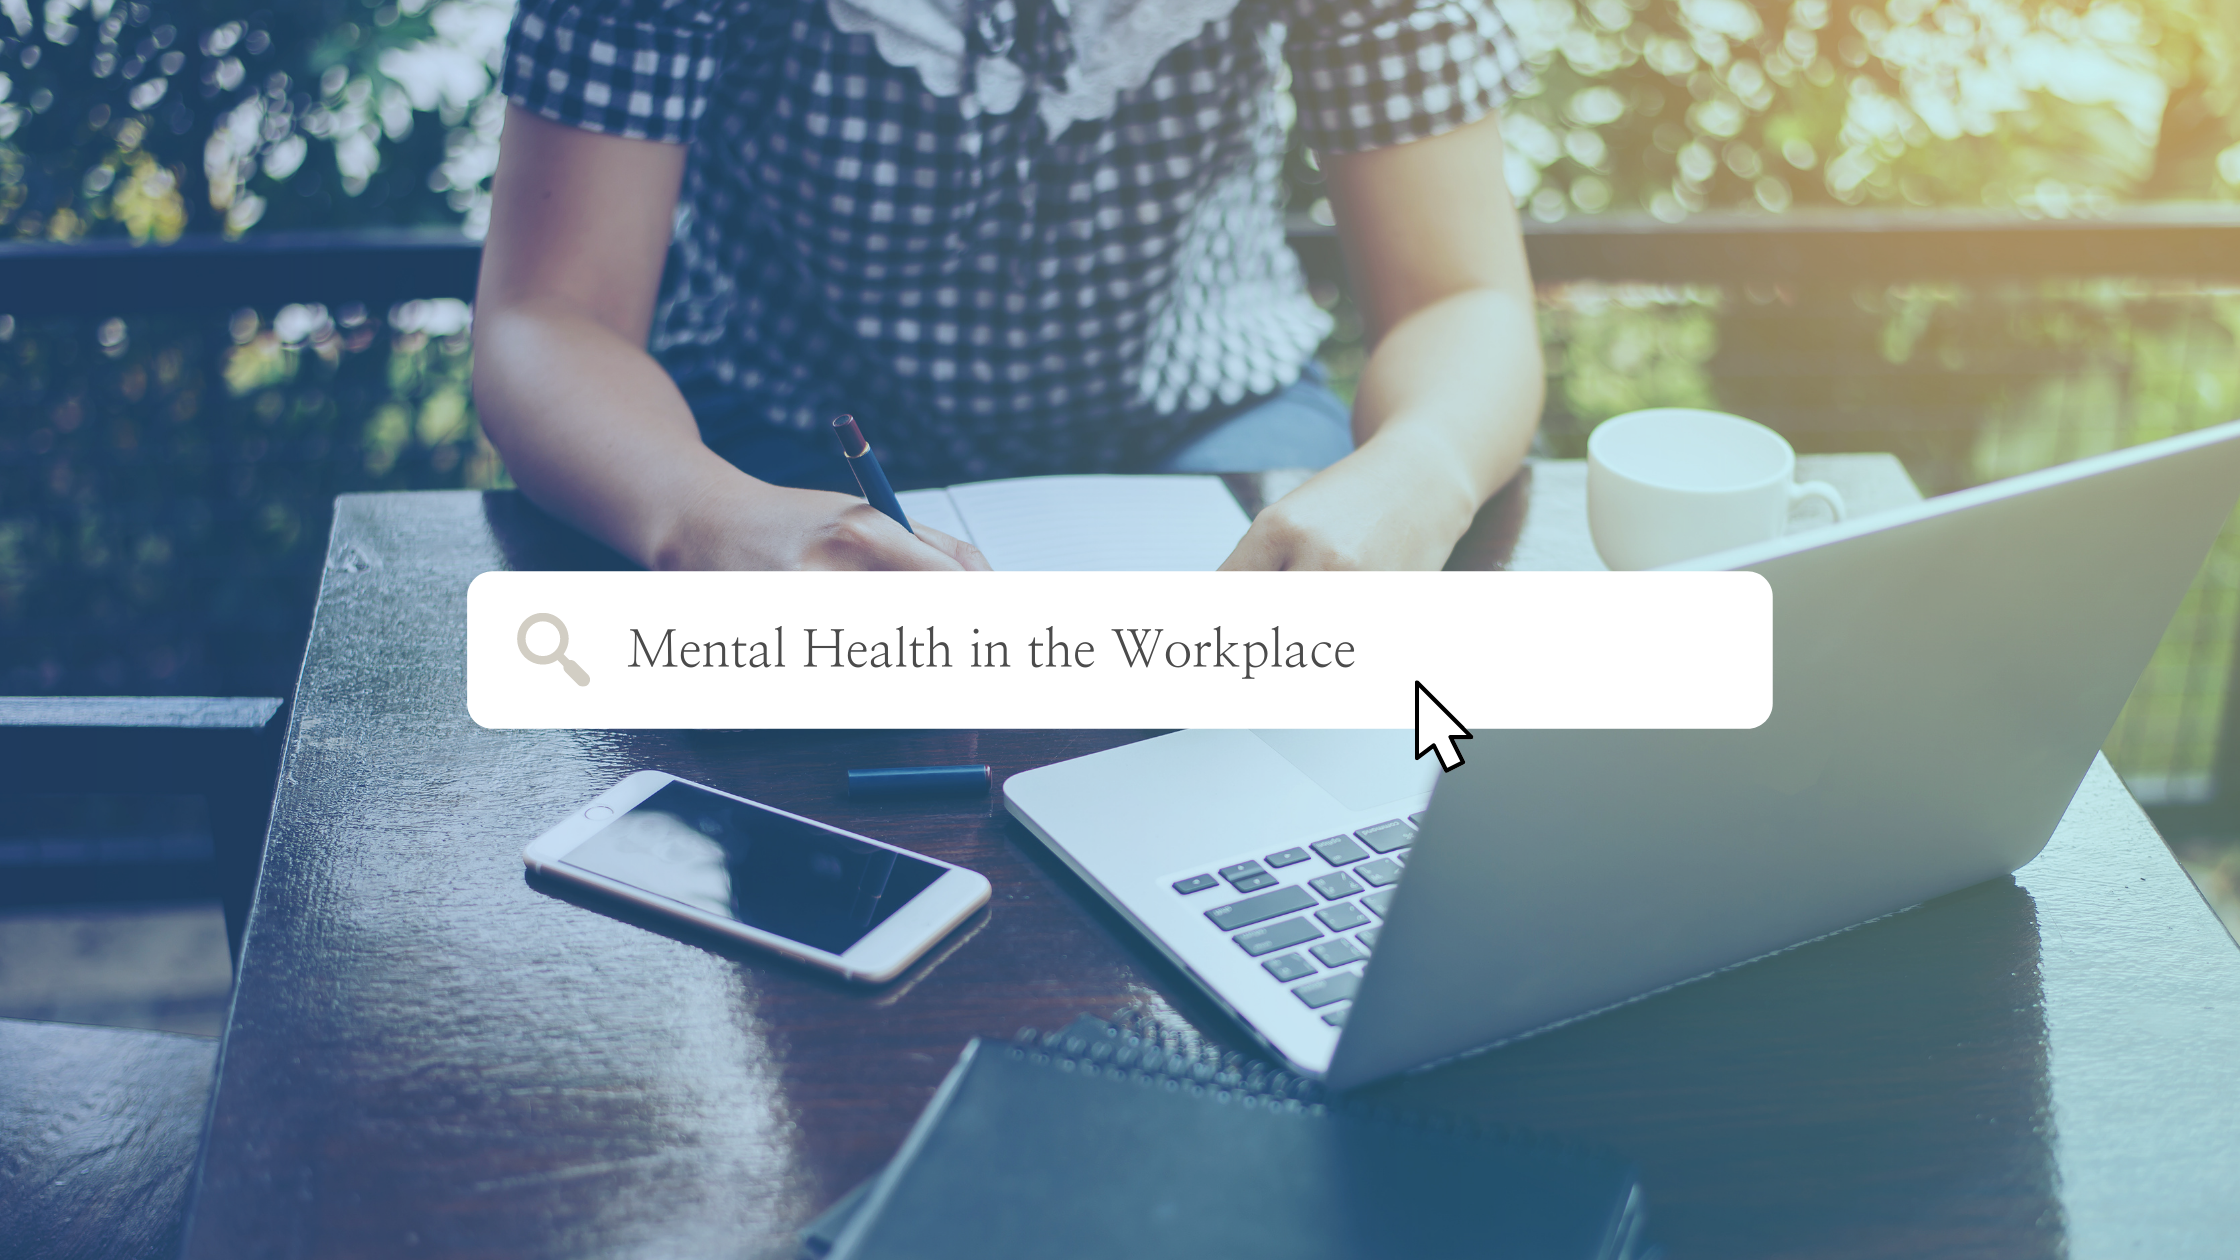 background image of person working on computer, foreground of a search bar with text: Mental Health in the Workplace